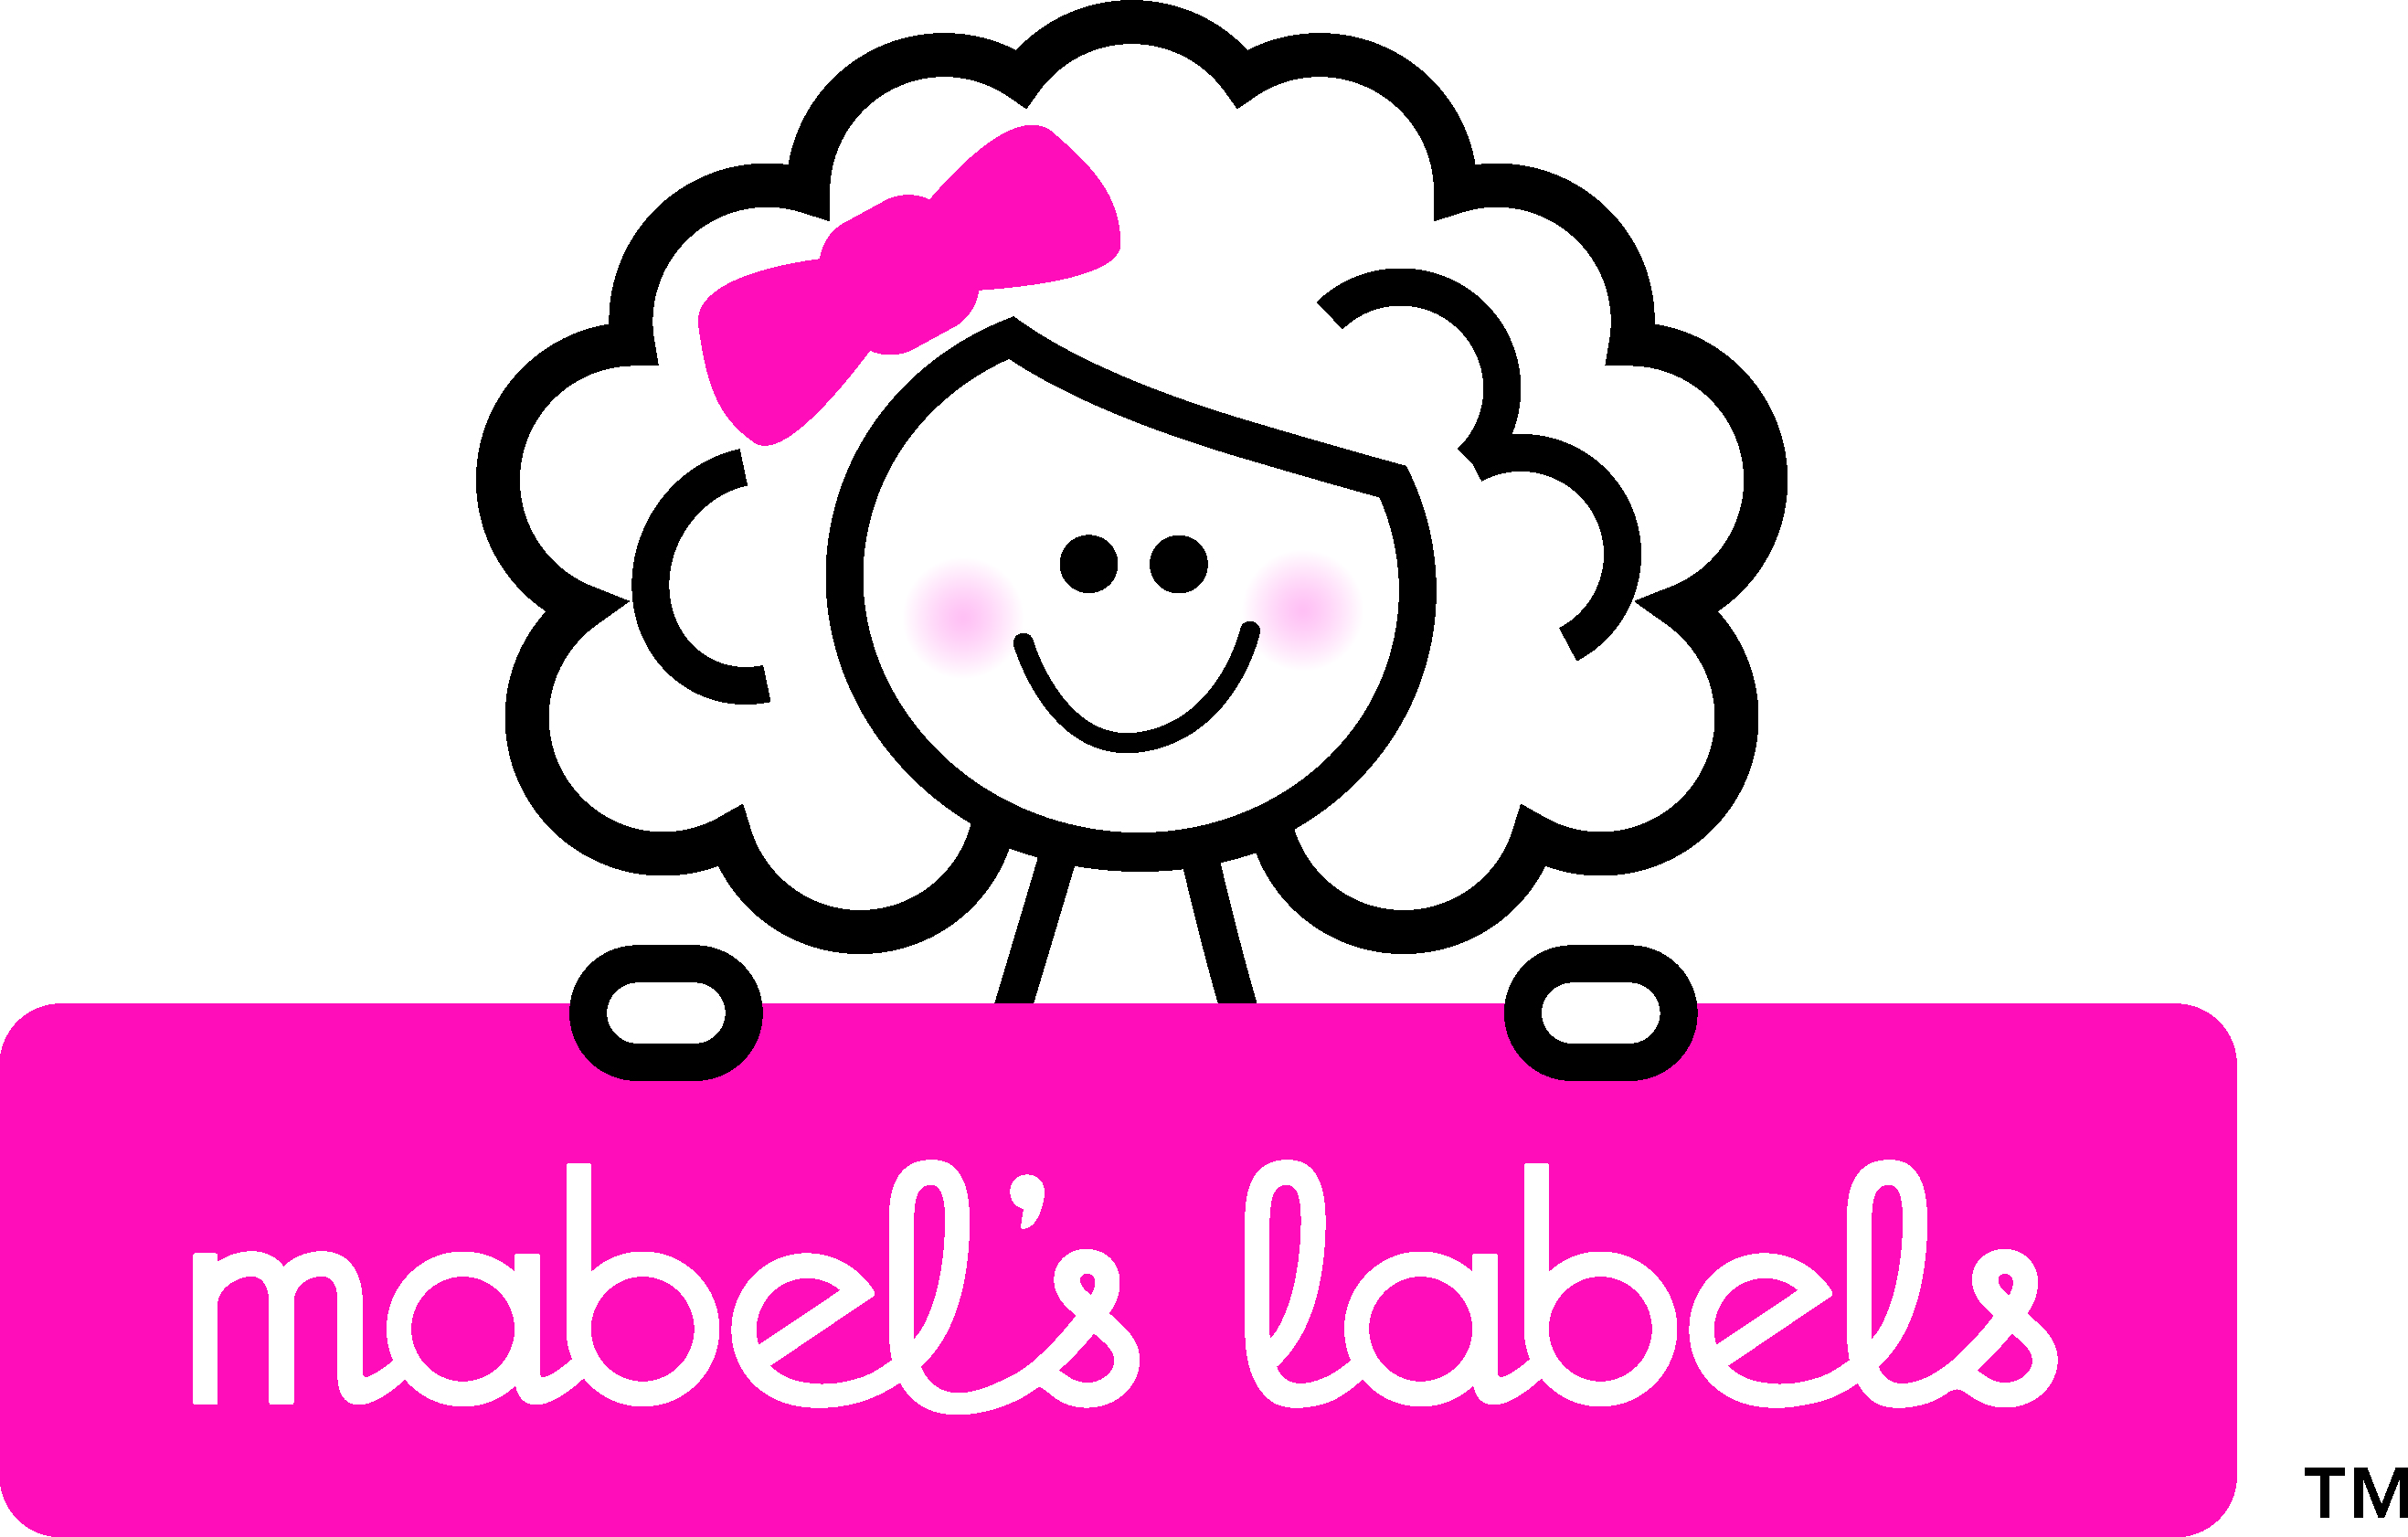 Mabel's Labels Coupons & Promo Codes